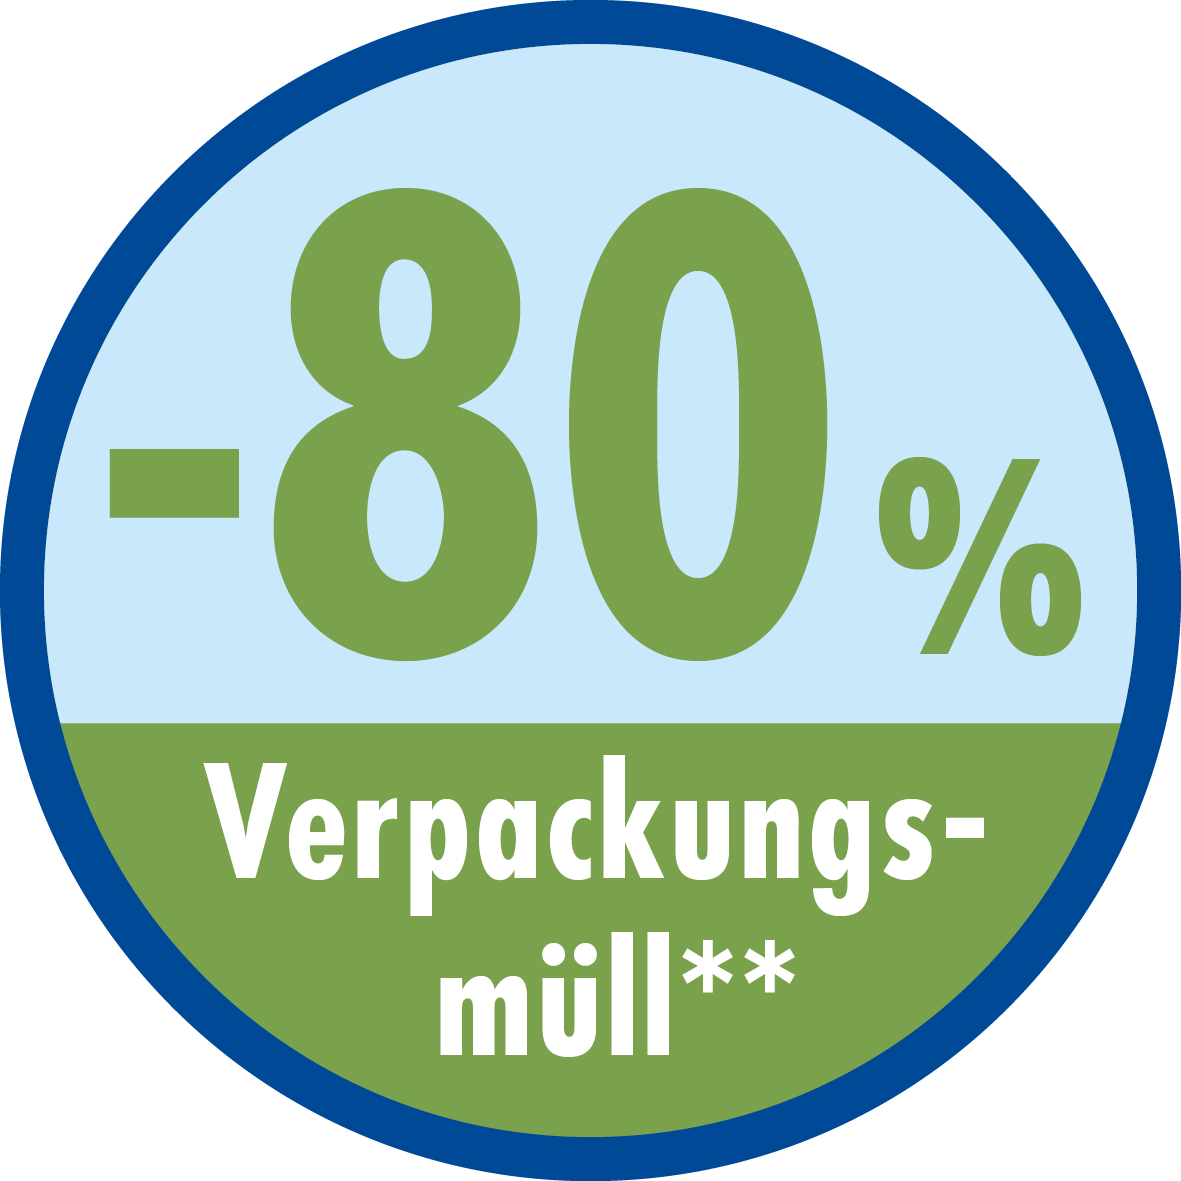 -80% Verpackungsmüll